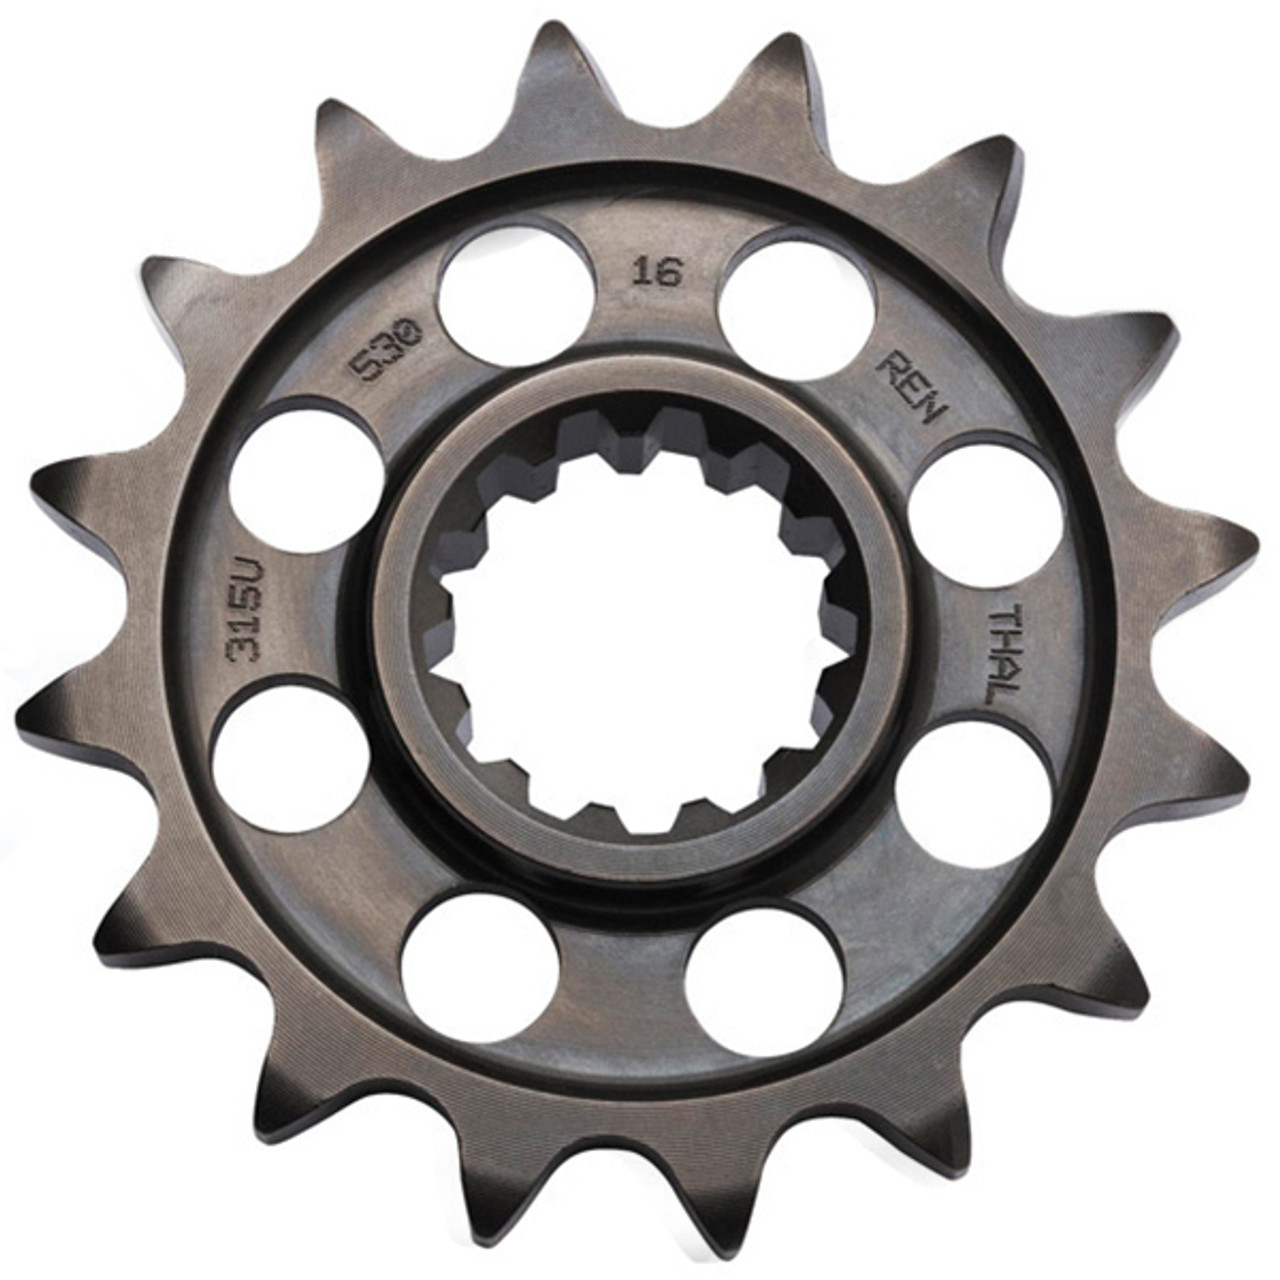 1098S 1098R 07-09 Renthal 15 T Front Sprocket 433-525-15 to fit Ducati 1098